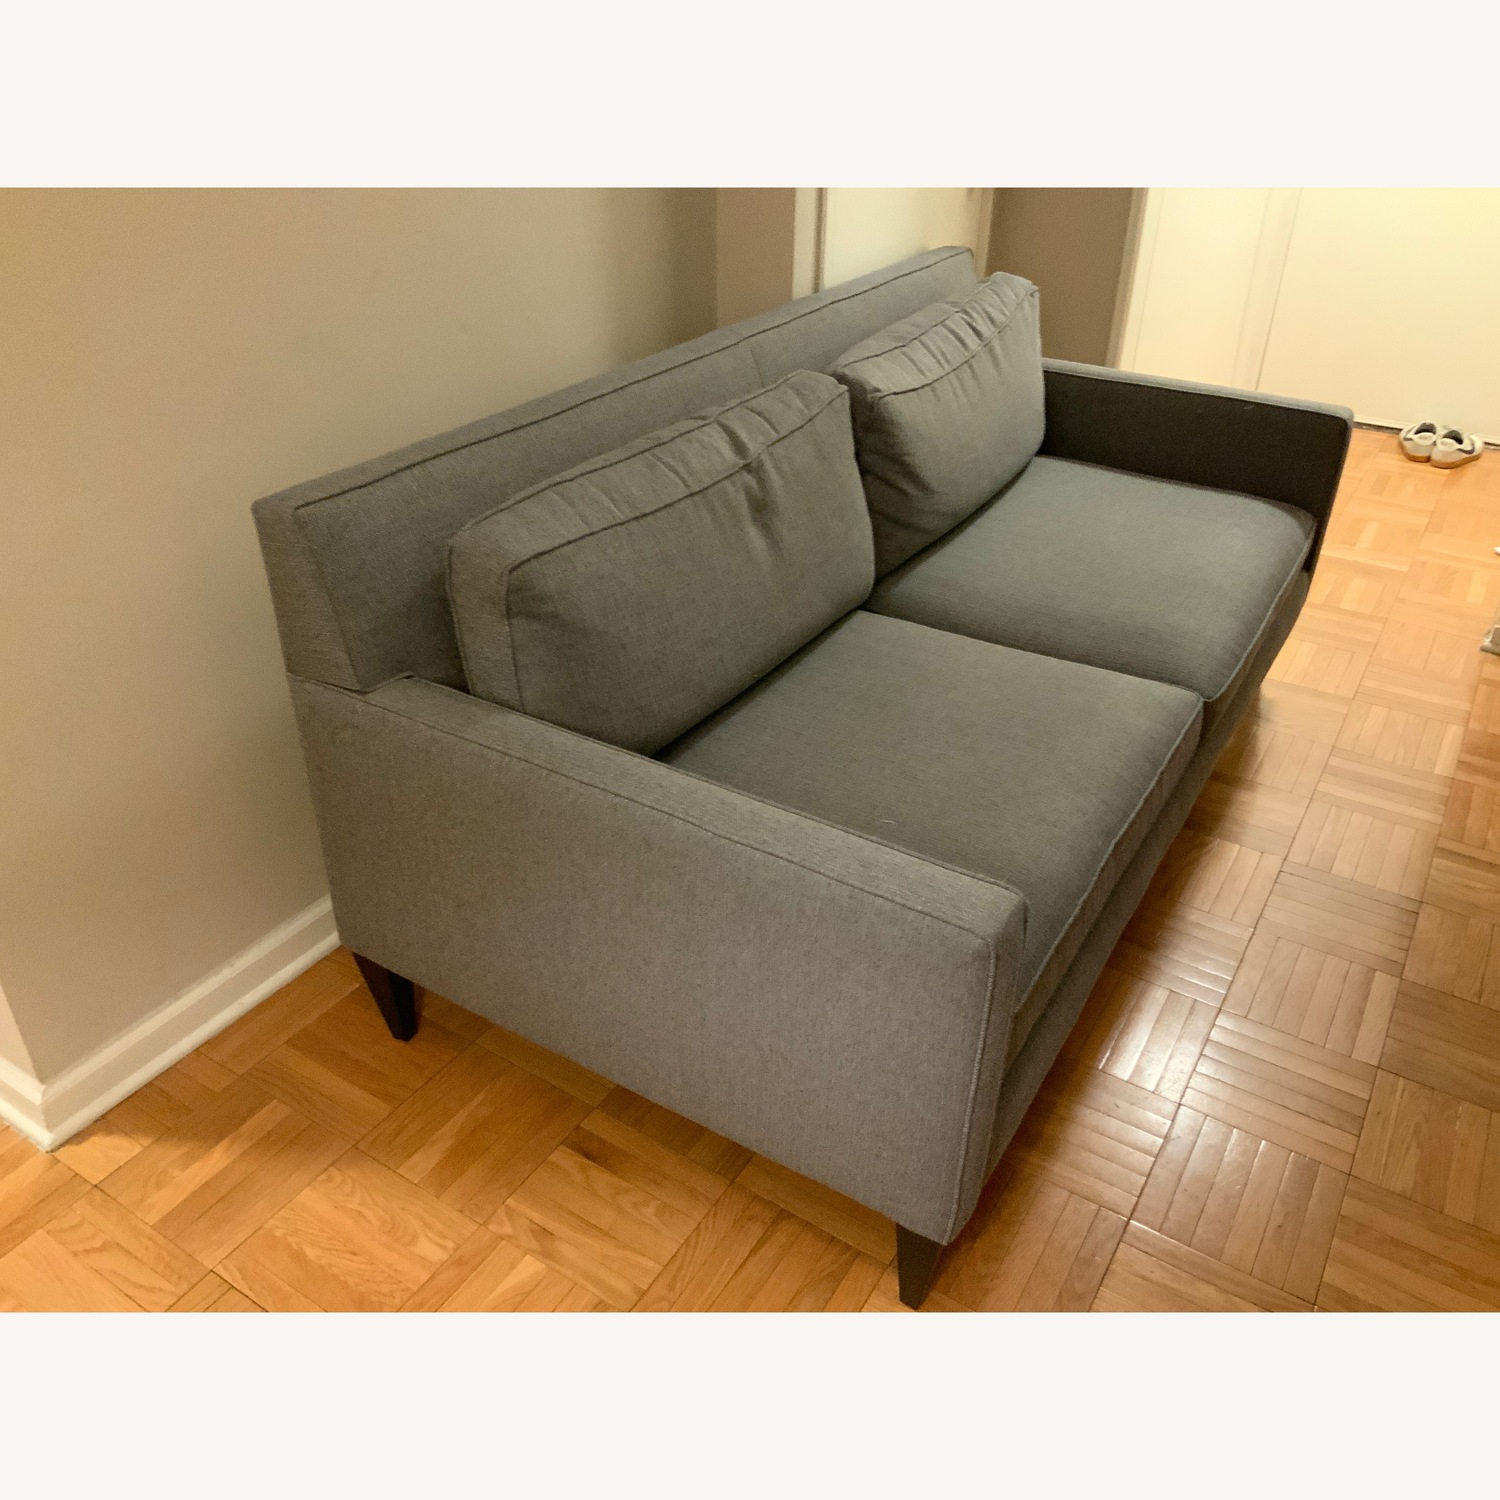 Crate & Barrel Rochelle Apartment Sofa - image-3